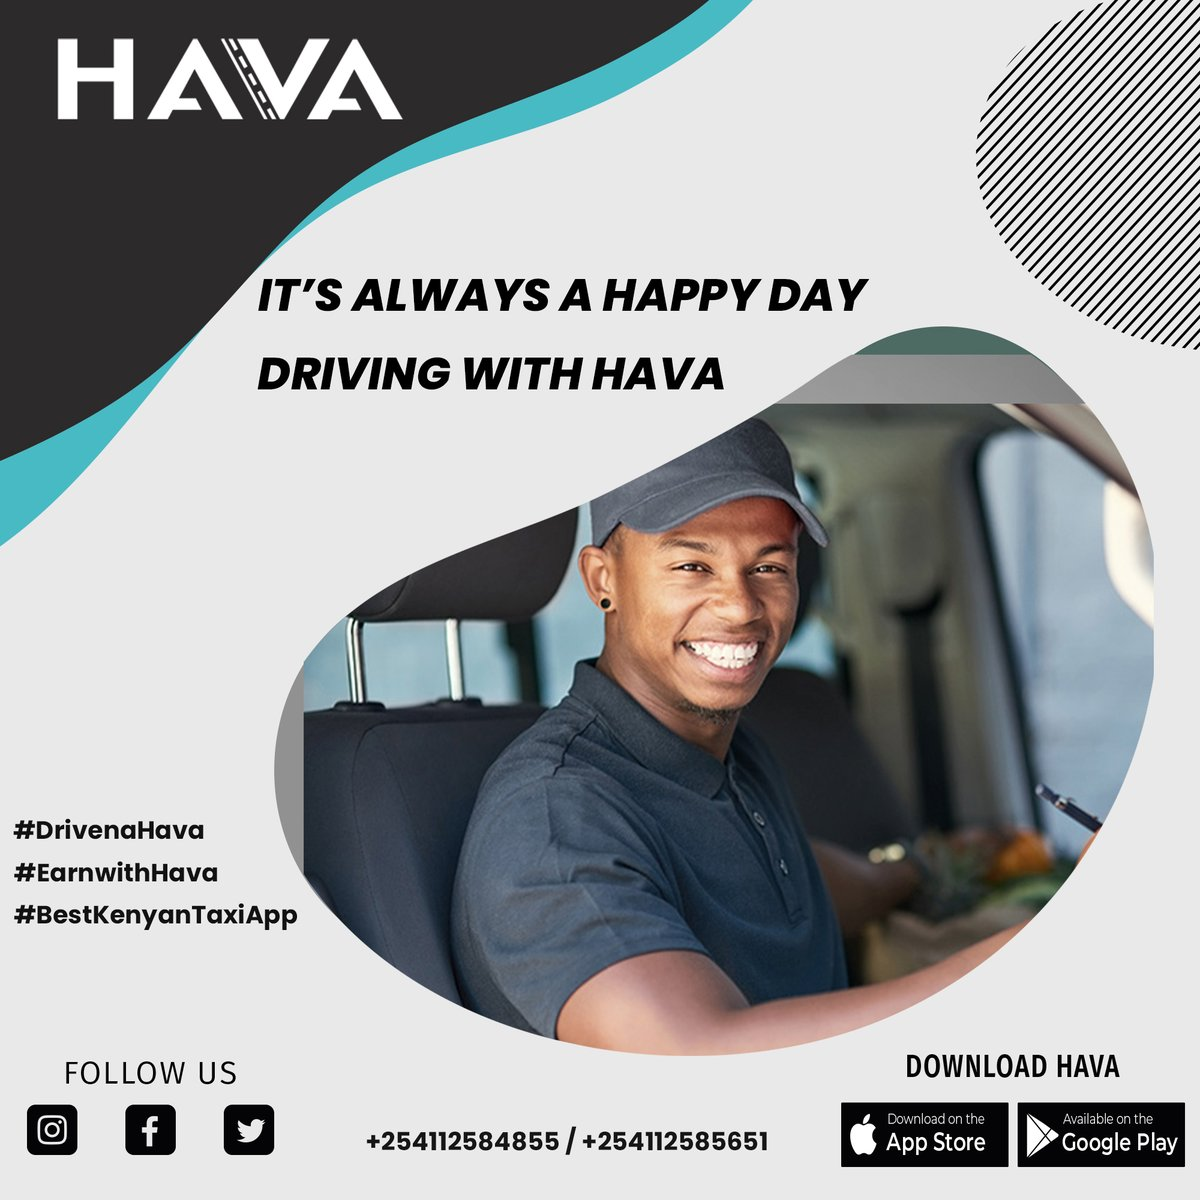 Have you partnered with Hava? Drive with Hava and earn leo, make doh na Hava!  #downloadhava #drivenahava #ridenahavacab #ReferAndEarn #hava #downloadhava #taxiservices  #technology #taxiapp #nairobi #mombasa #kisumu